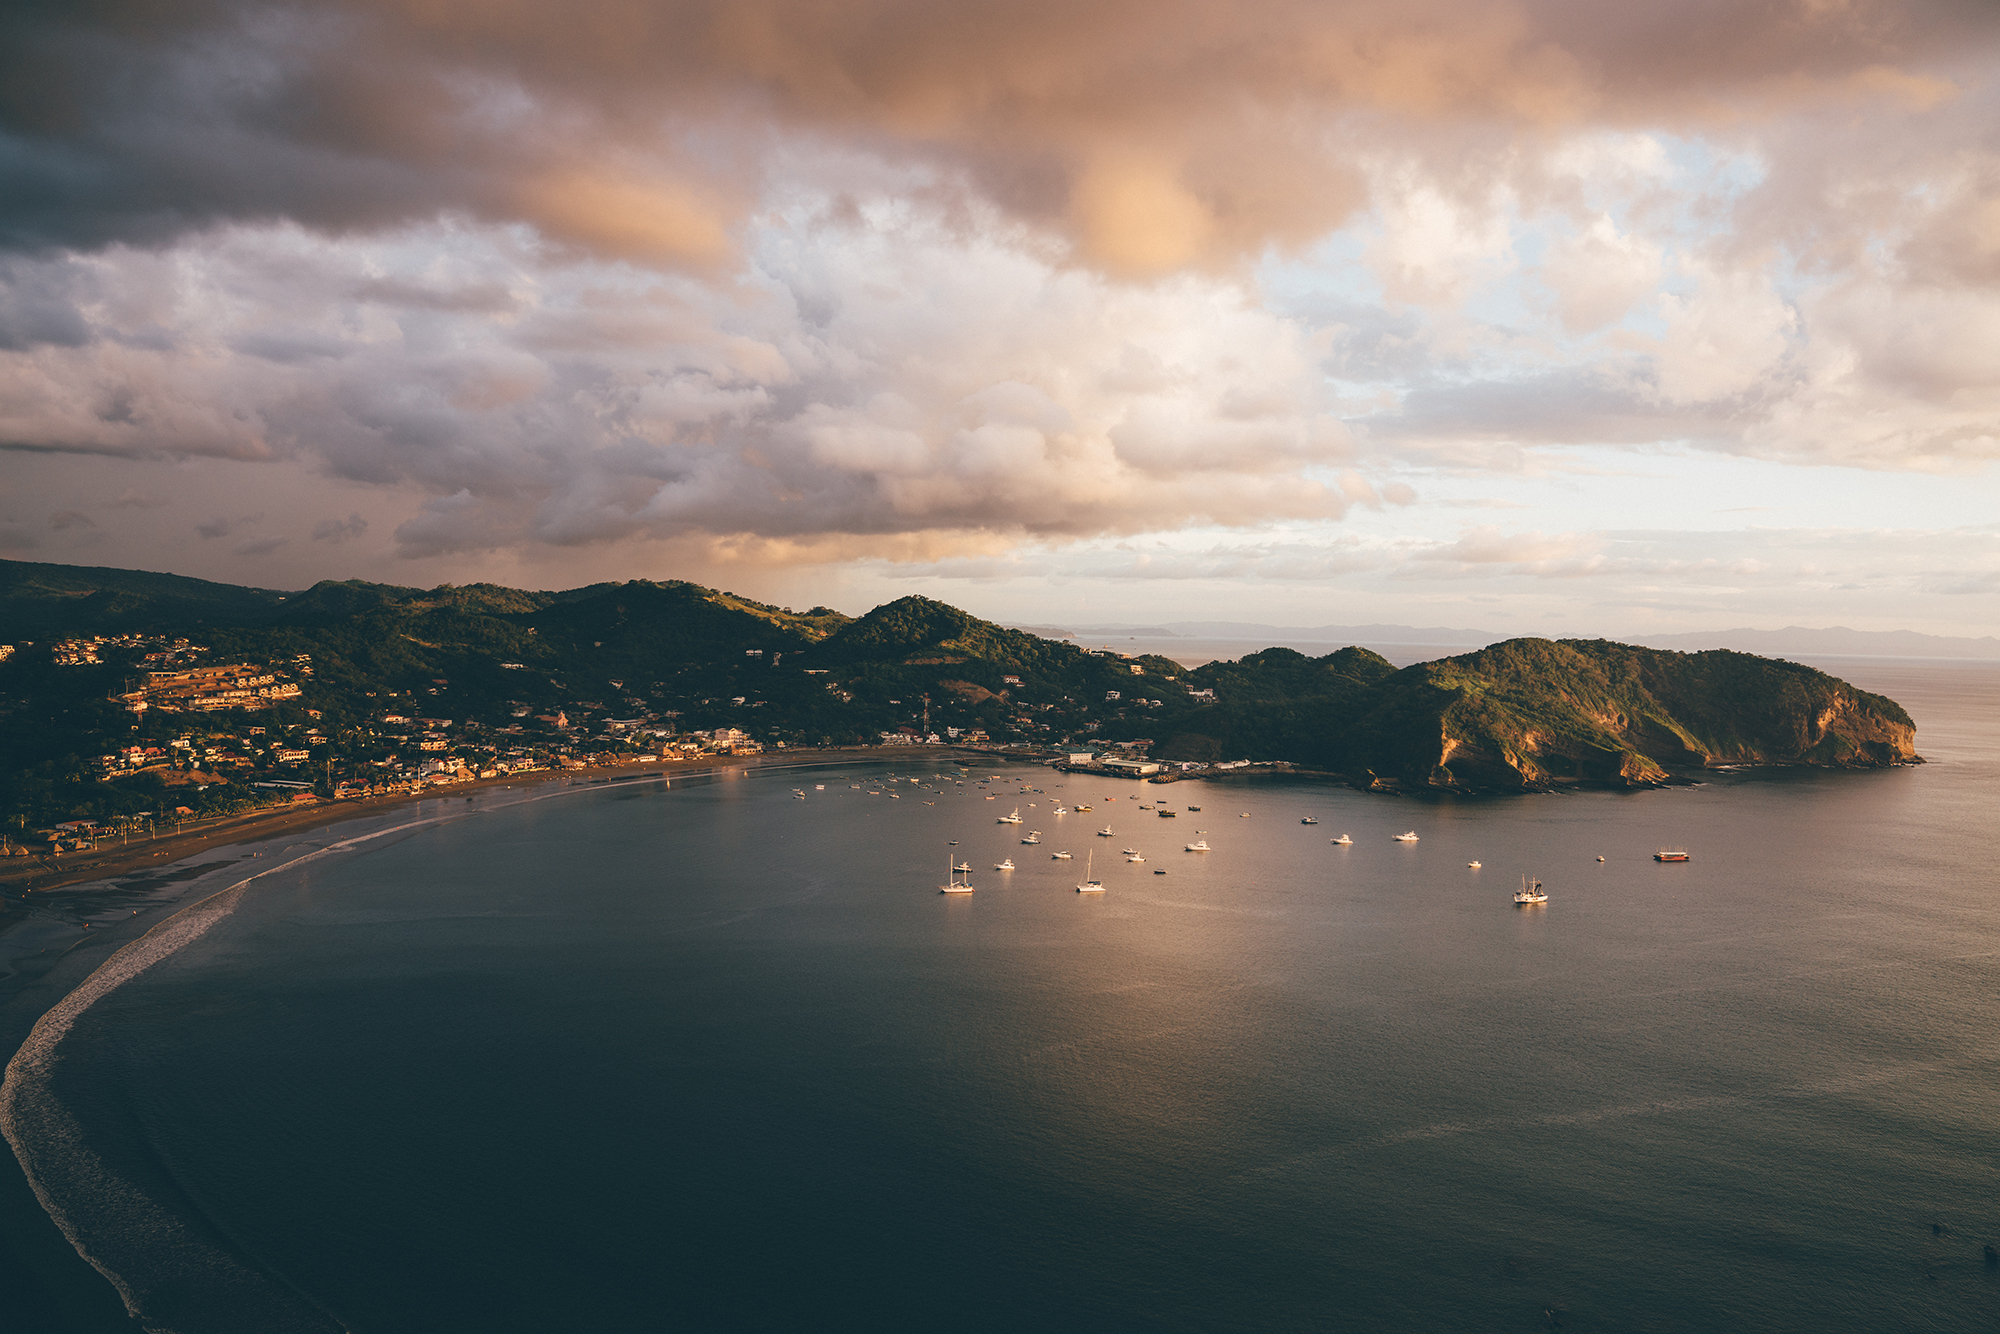 10 Stunning Photos That Will Make You Want To Visit Nicaragua